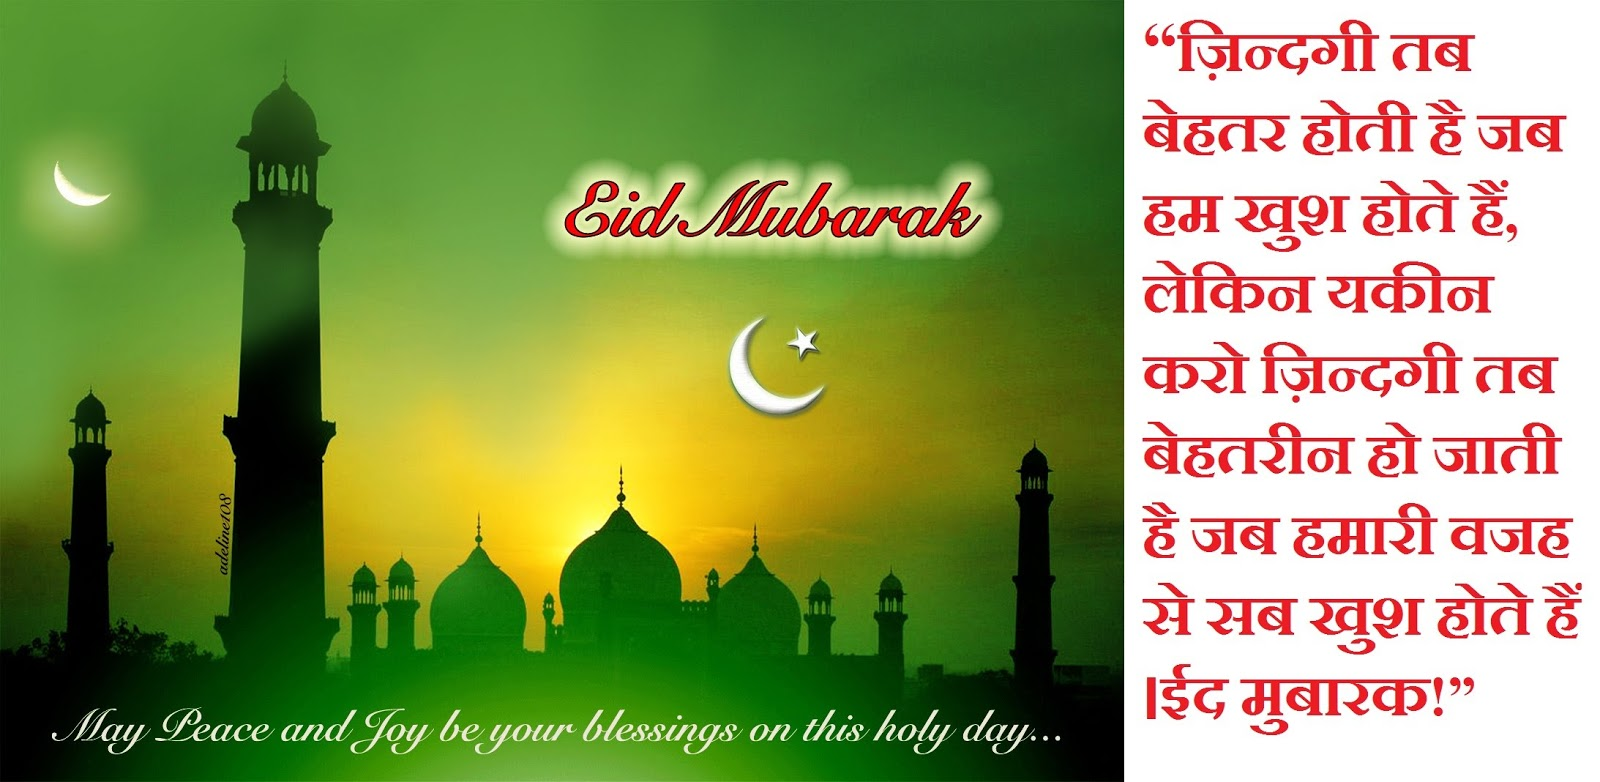 Eid Mubarak Eid Ul Fitr 2018 Greetings Messages English And Hindi